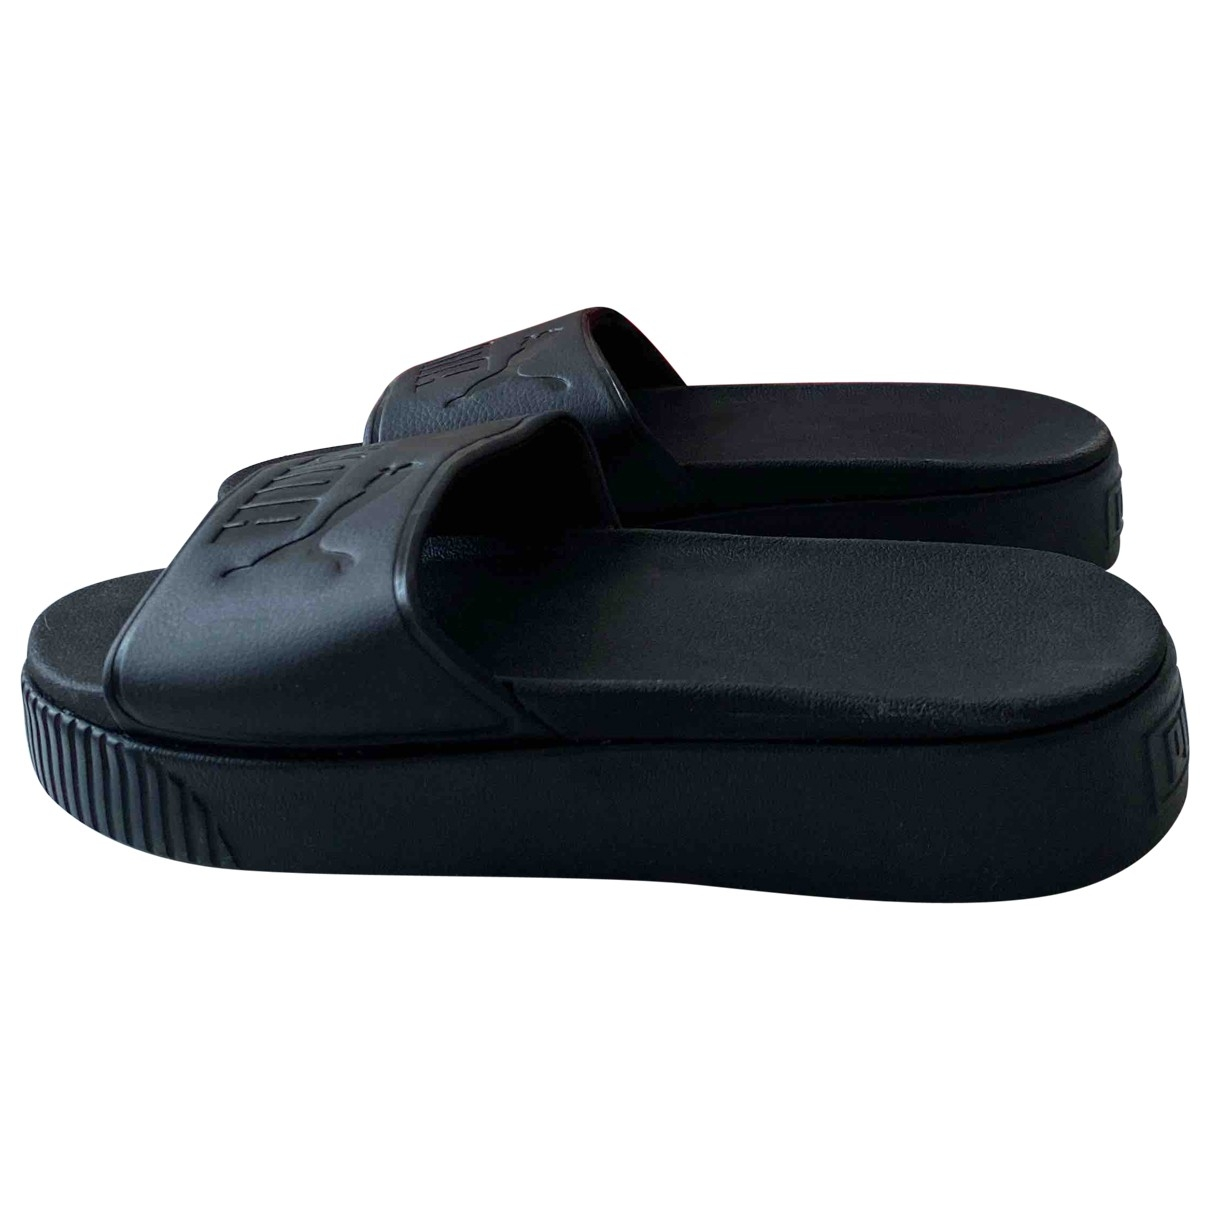 Puma \N Black Sandals for Women 7 UK